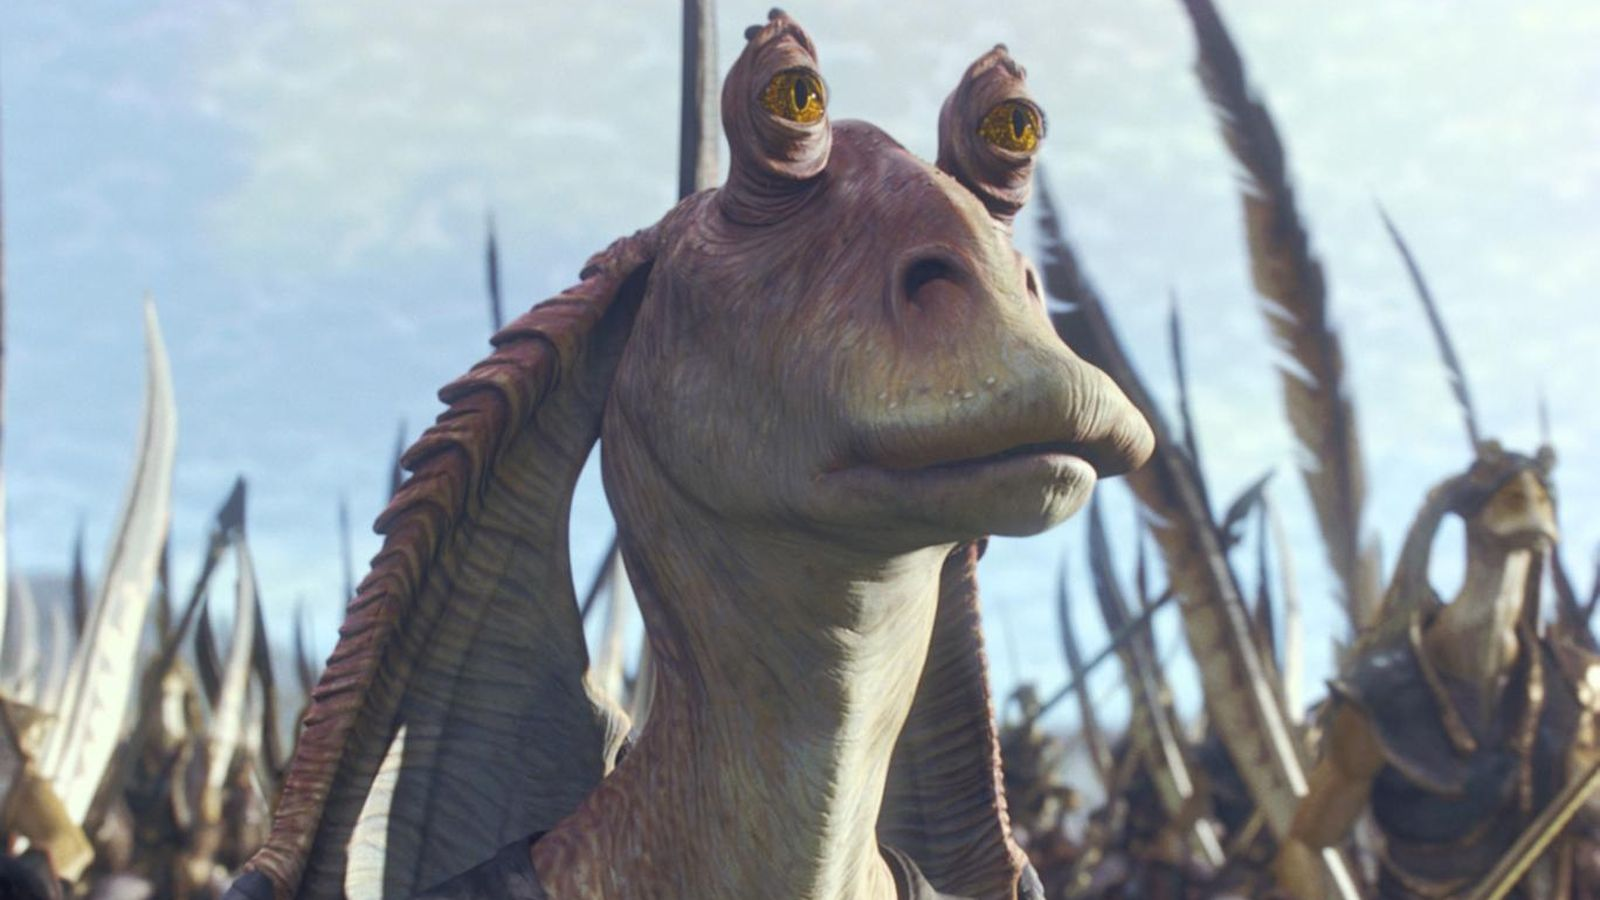 JAR JAR BINKS TO BE DIGITALLY RECONSTRUCTED FOR THE LAST JEDI